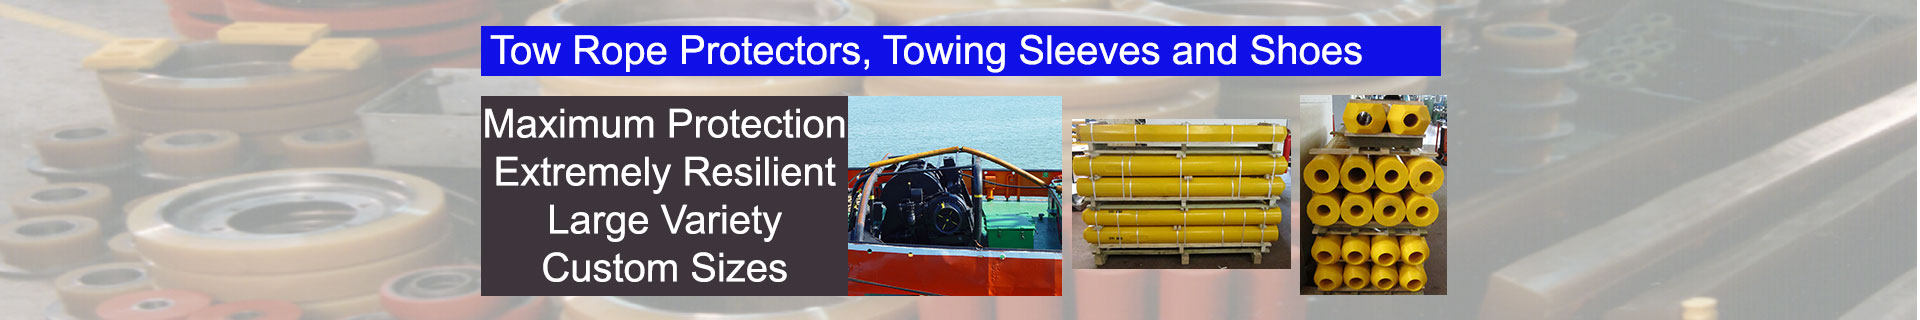 Tow Rope Protectors